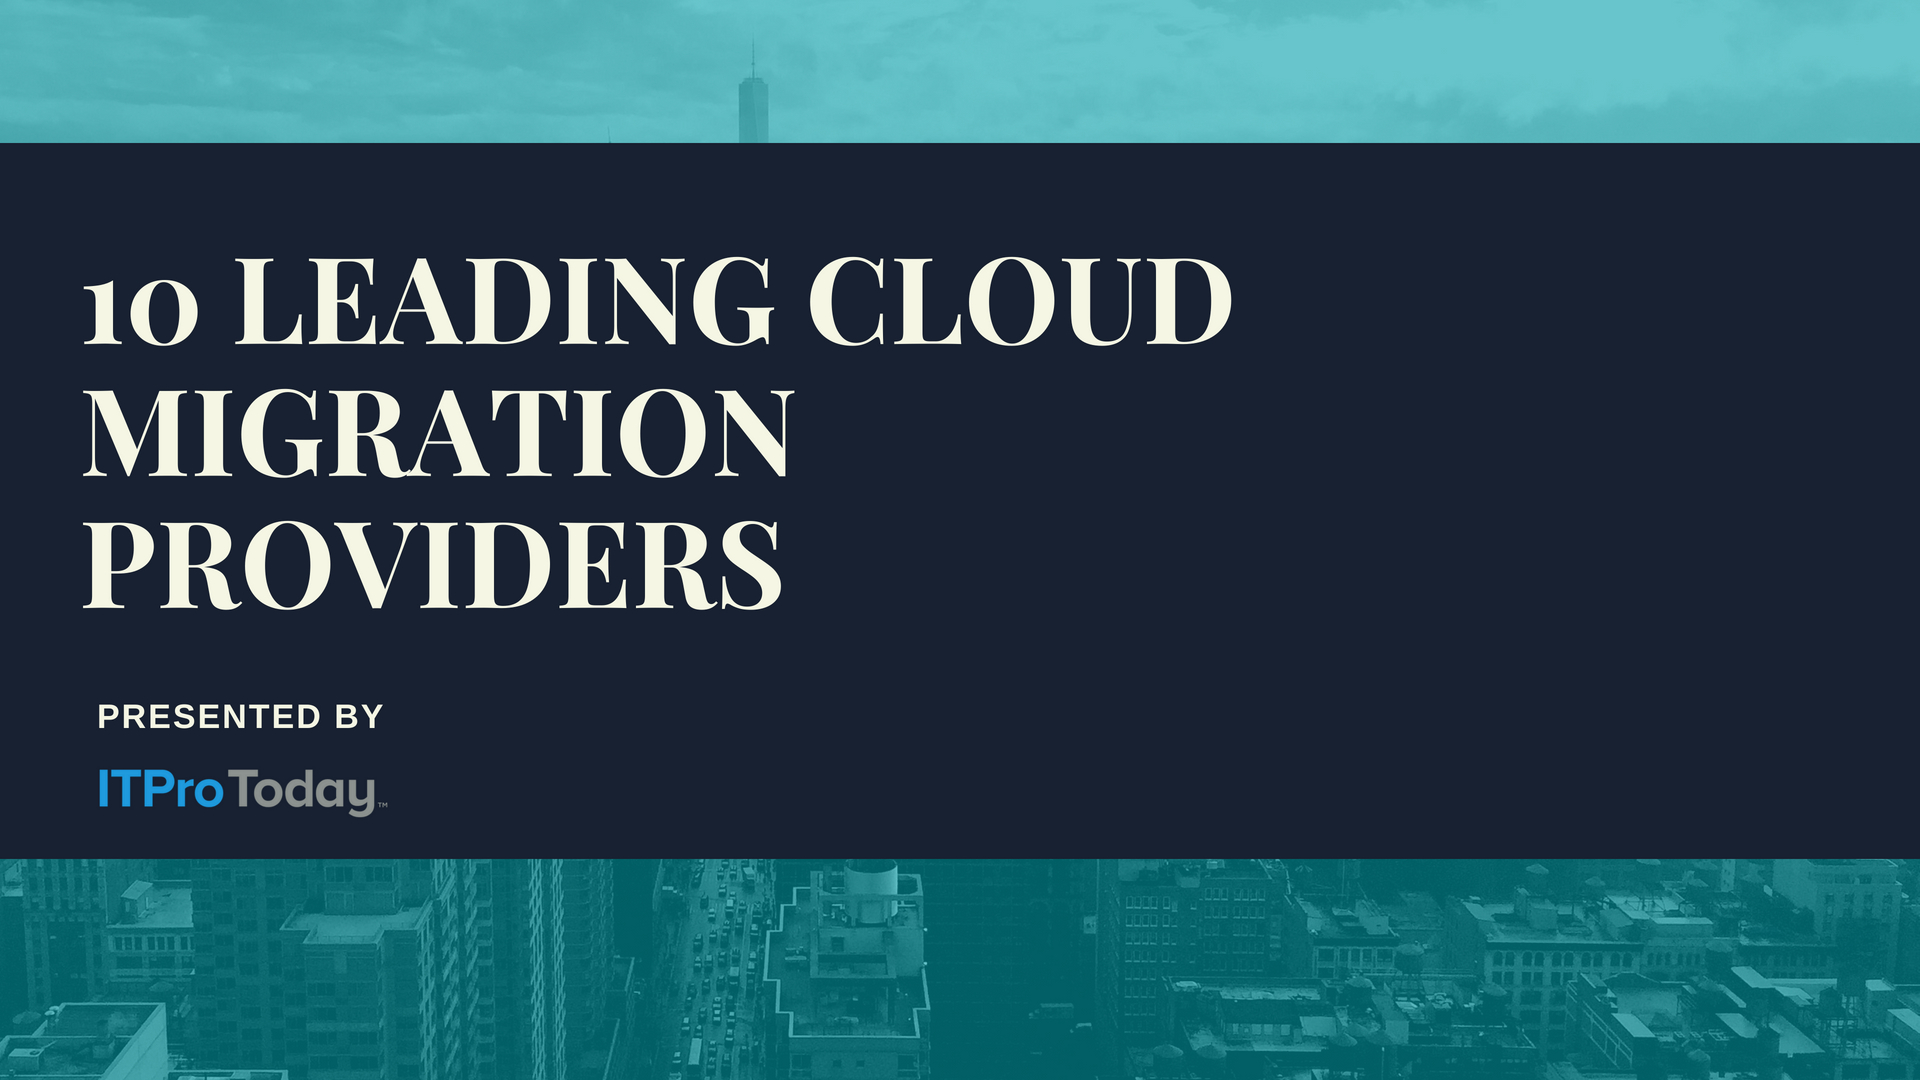 10 Leading Public Cloud Migration Services Providers | IT Pro